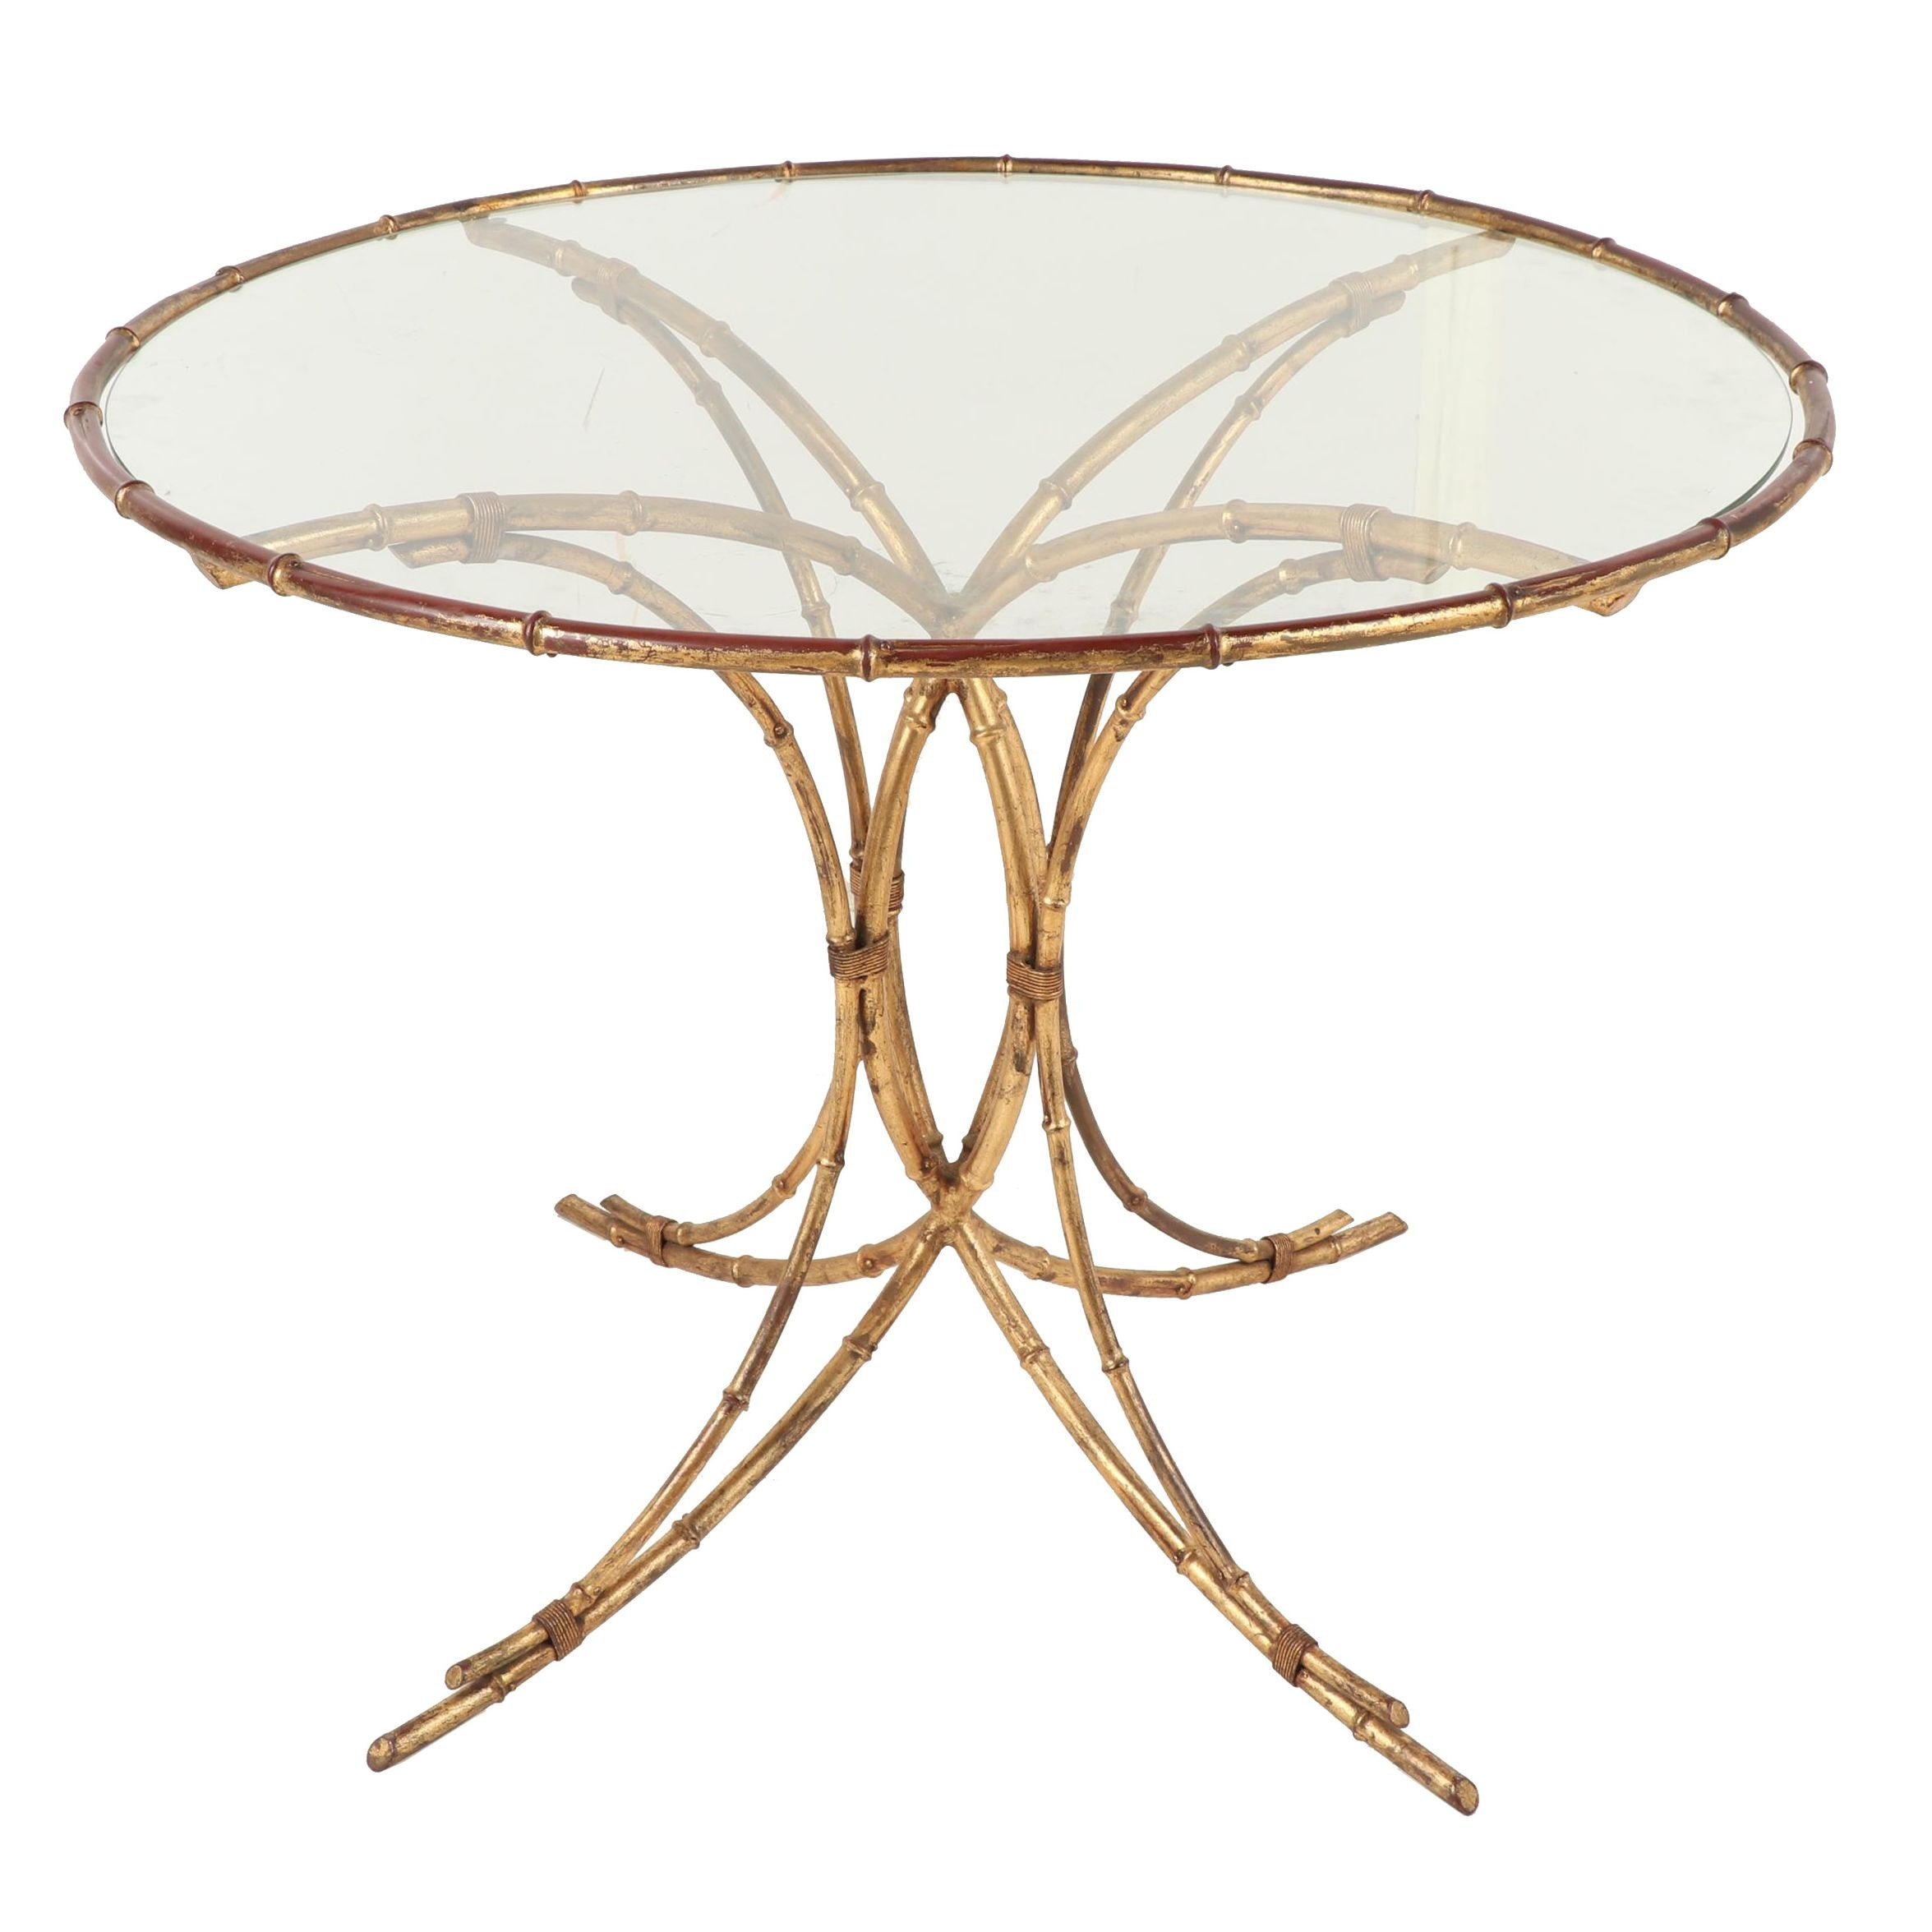 Gold Toned Metal Bamboo Patio Table